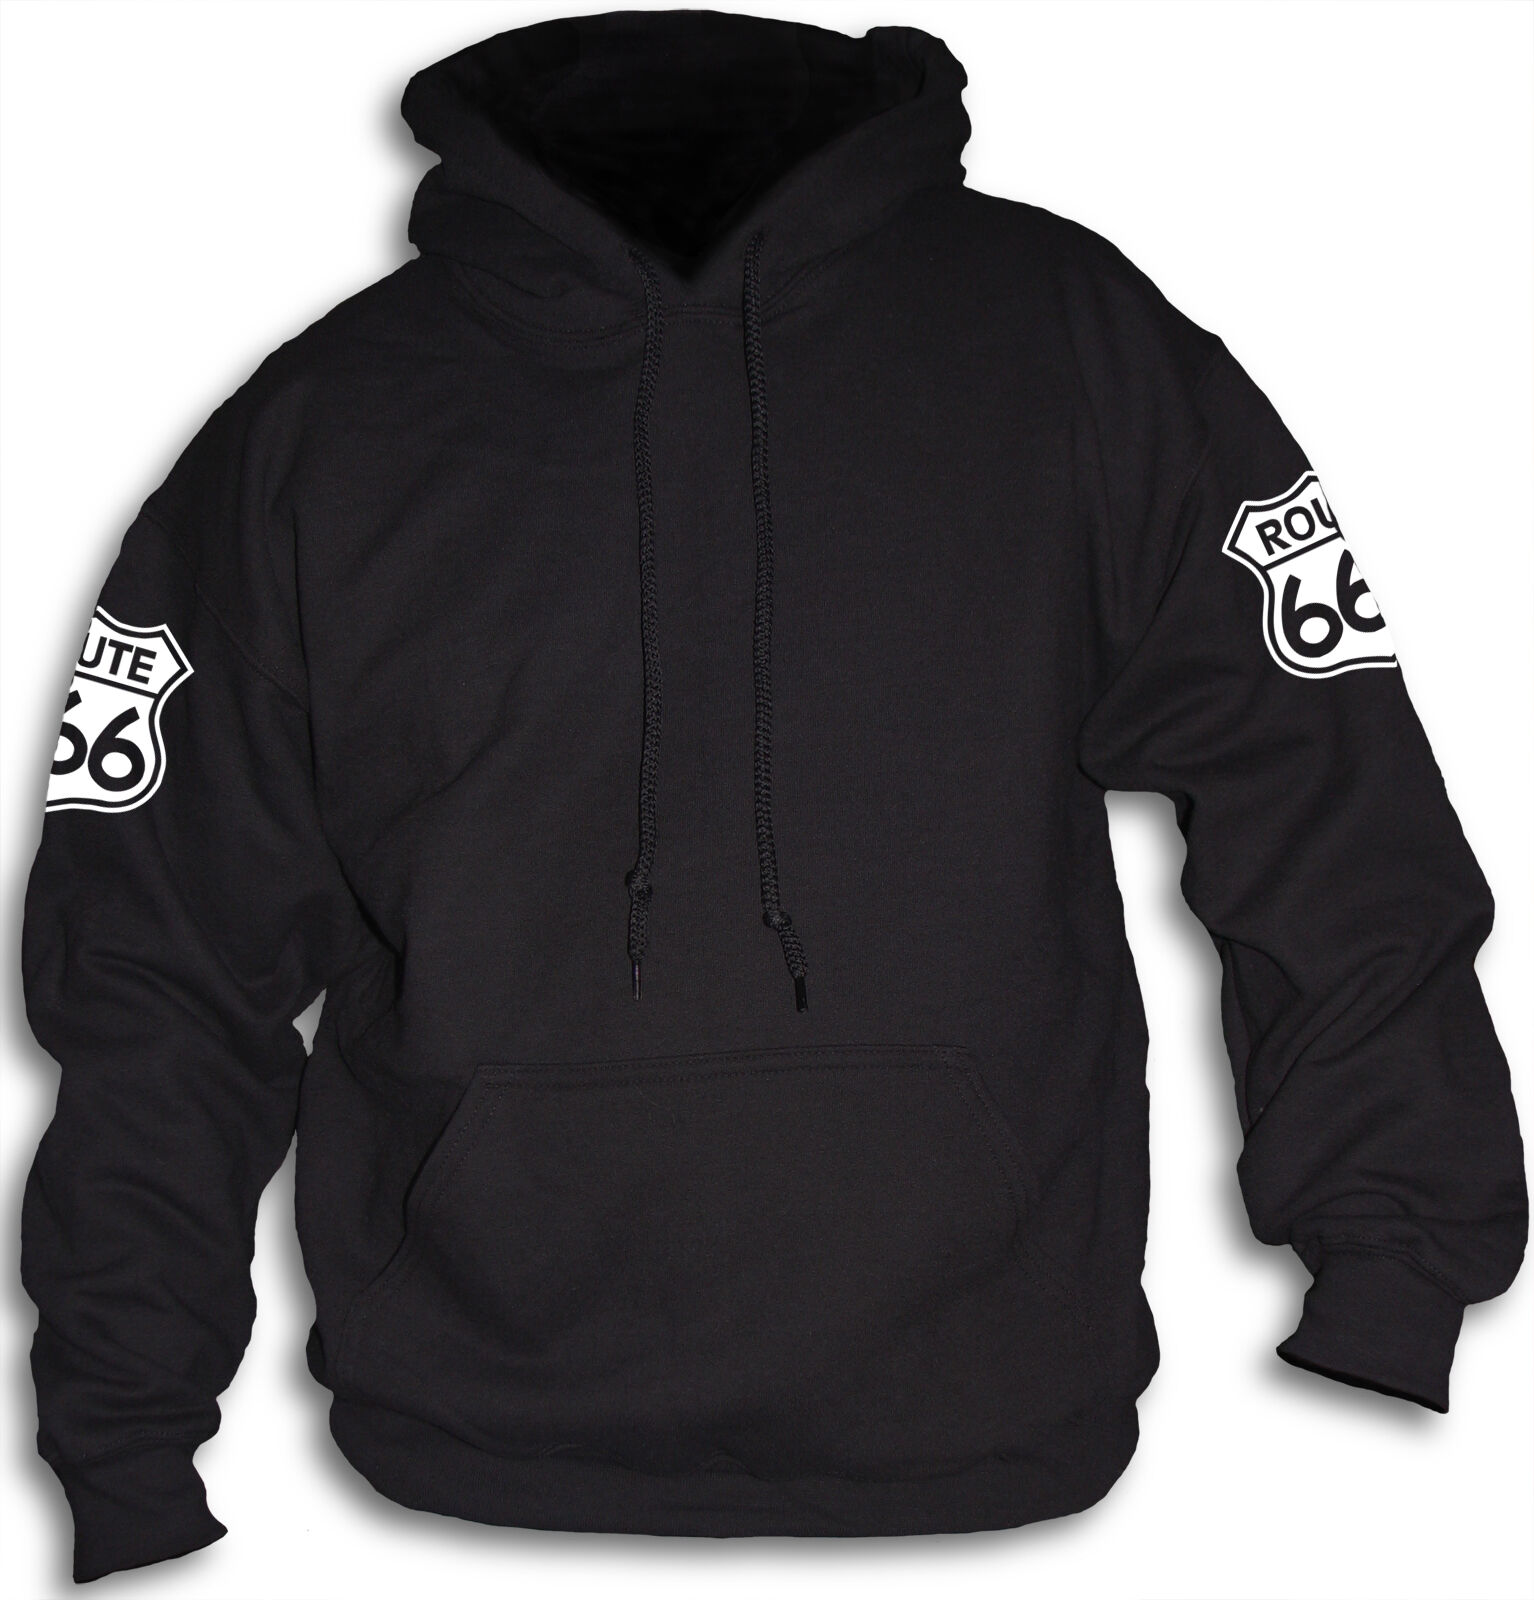 Mens Womens Route 666 Highway To Hell Number of The The The Beast Biker Hoody Sm - 2XL dabf6b